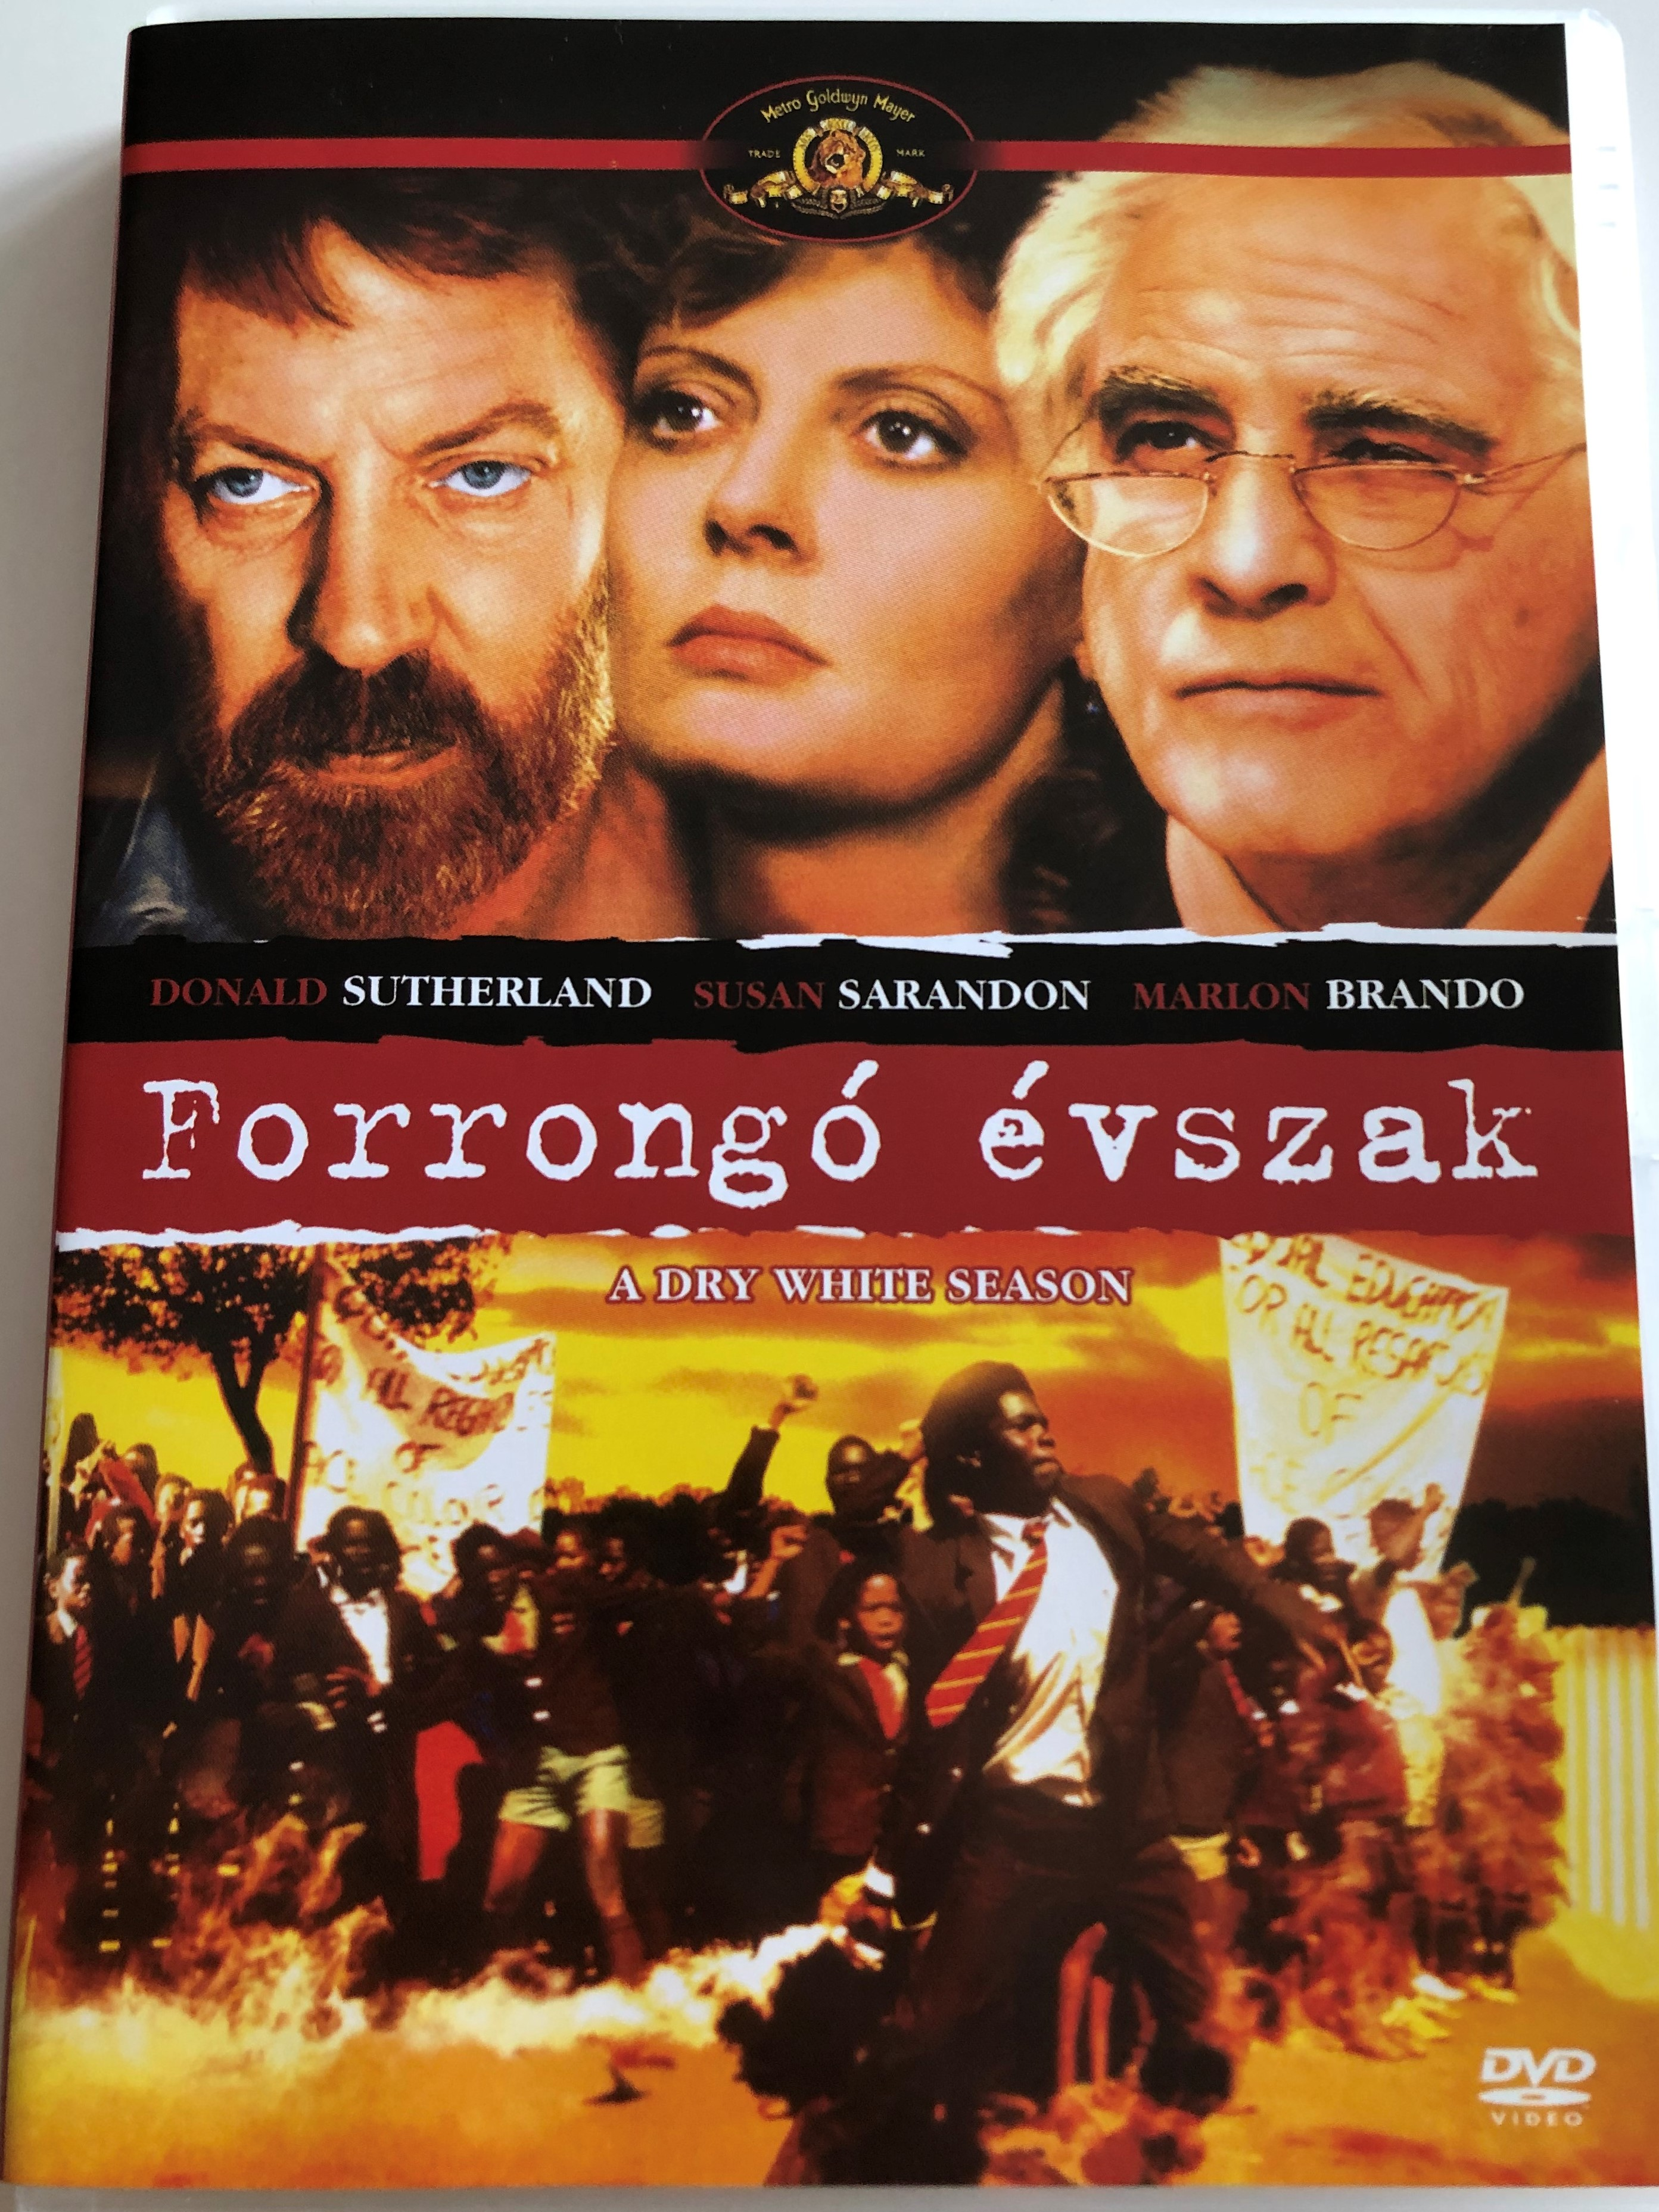 a-dry-white-season-dvd-1989-forrong-vszak-directed-by-euzhan-palcy-1.jpg